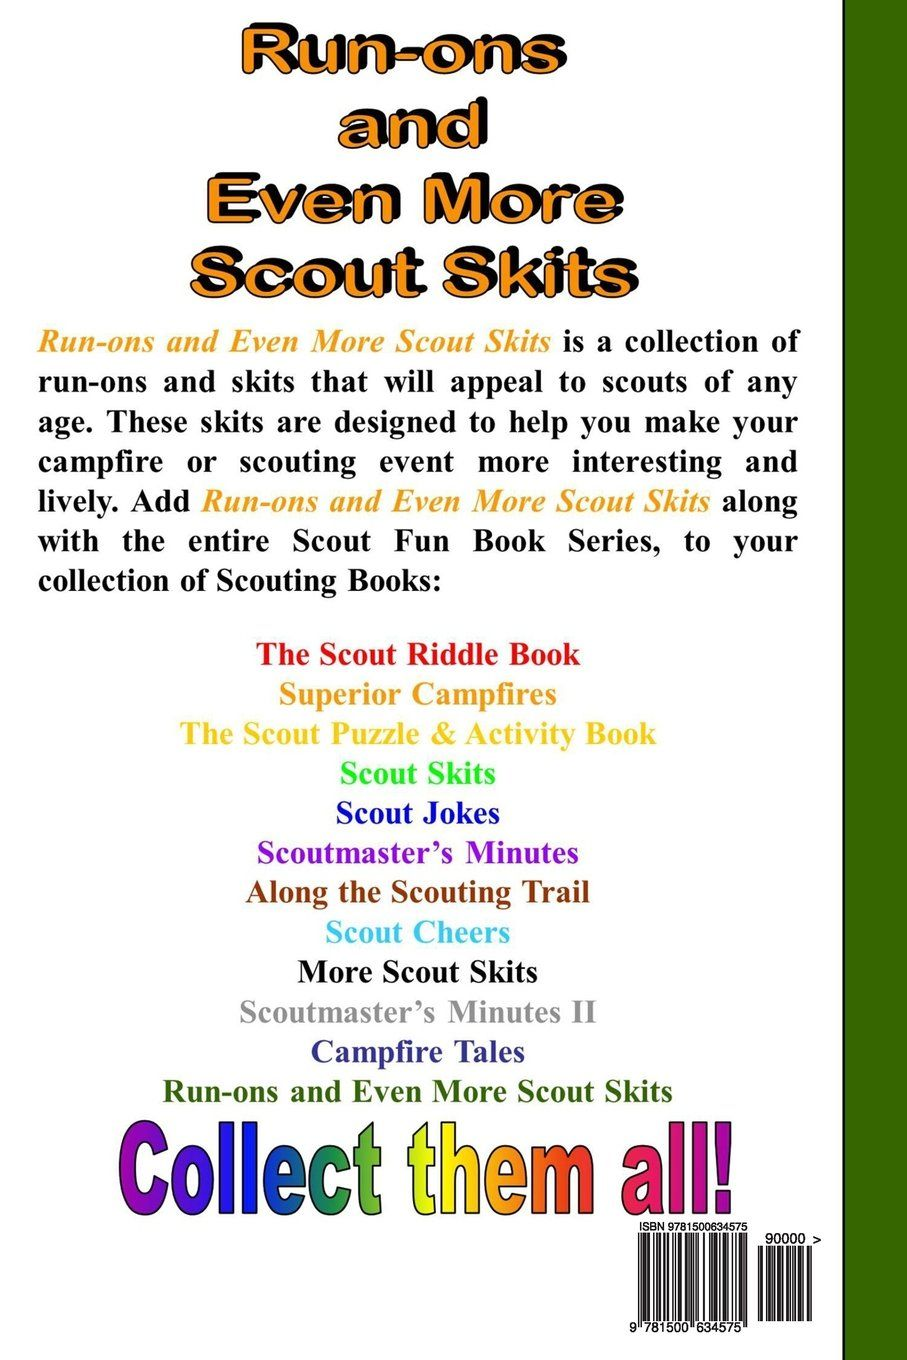 collect them all!!! scout skits, jokes, riddles, cheers, stories and